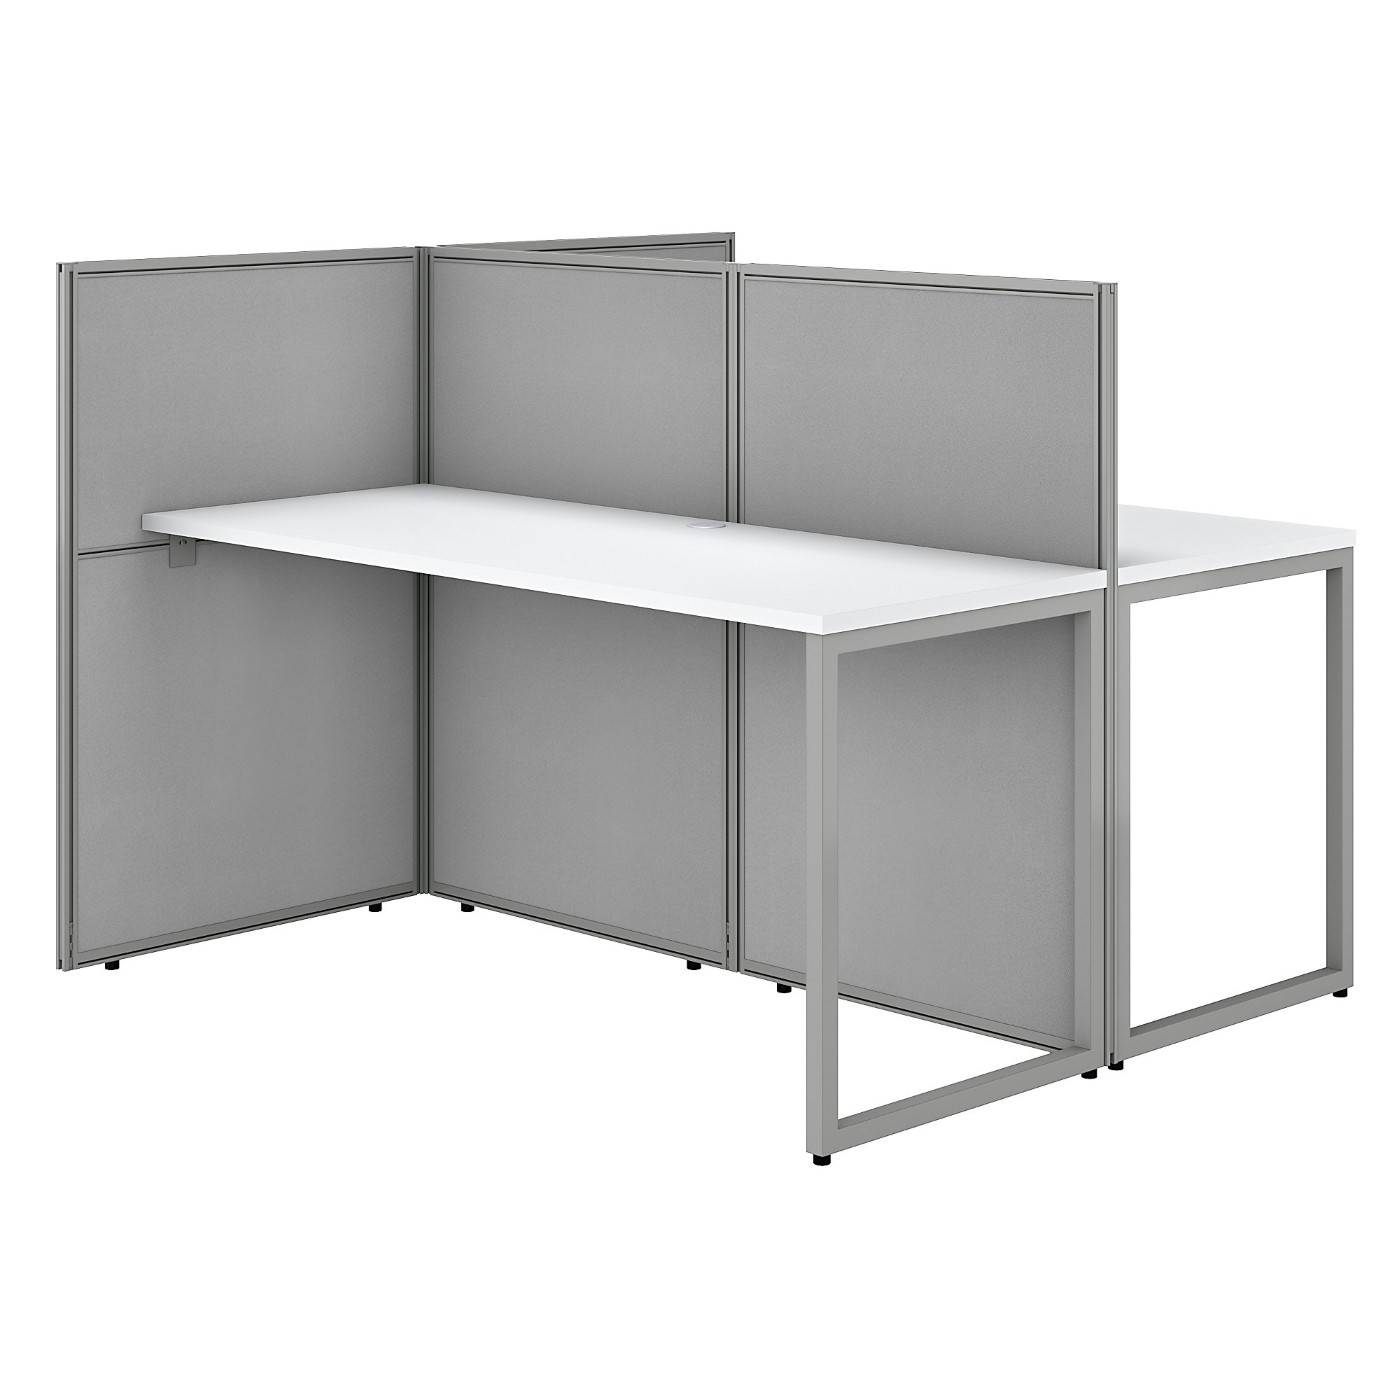 BUSH BUSINESS FURNITURE EASY OFFICE 60W 2 PERSON CUBICLE DESK WORKSTATION WITH 45H PANELS. FREE SHIPPING SALE DEDUCT 10% MORE ENTER '10percent' IN COUPON CODE BOX WHILE CHECKING OUT. ENDS 5-31-20.